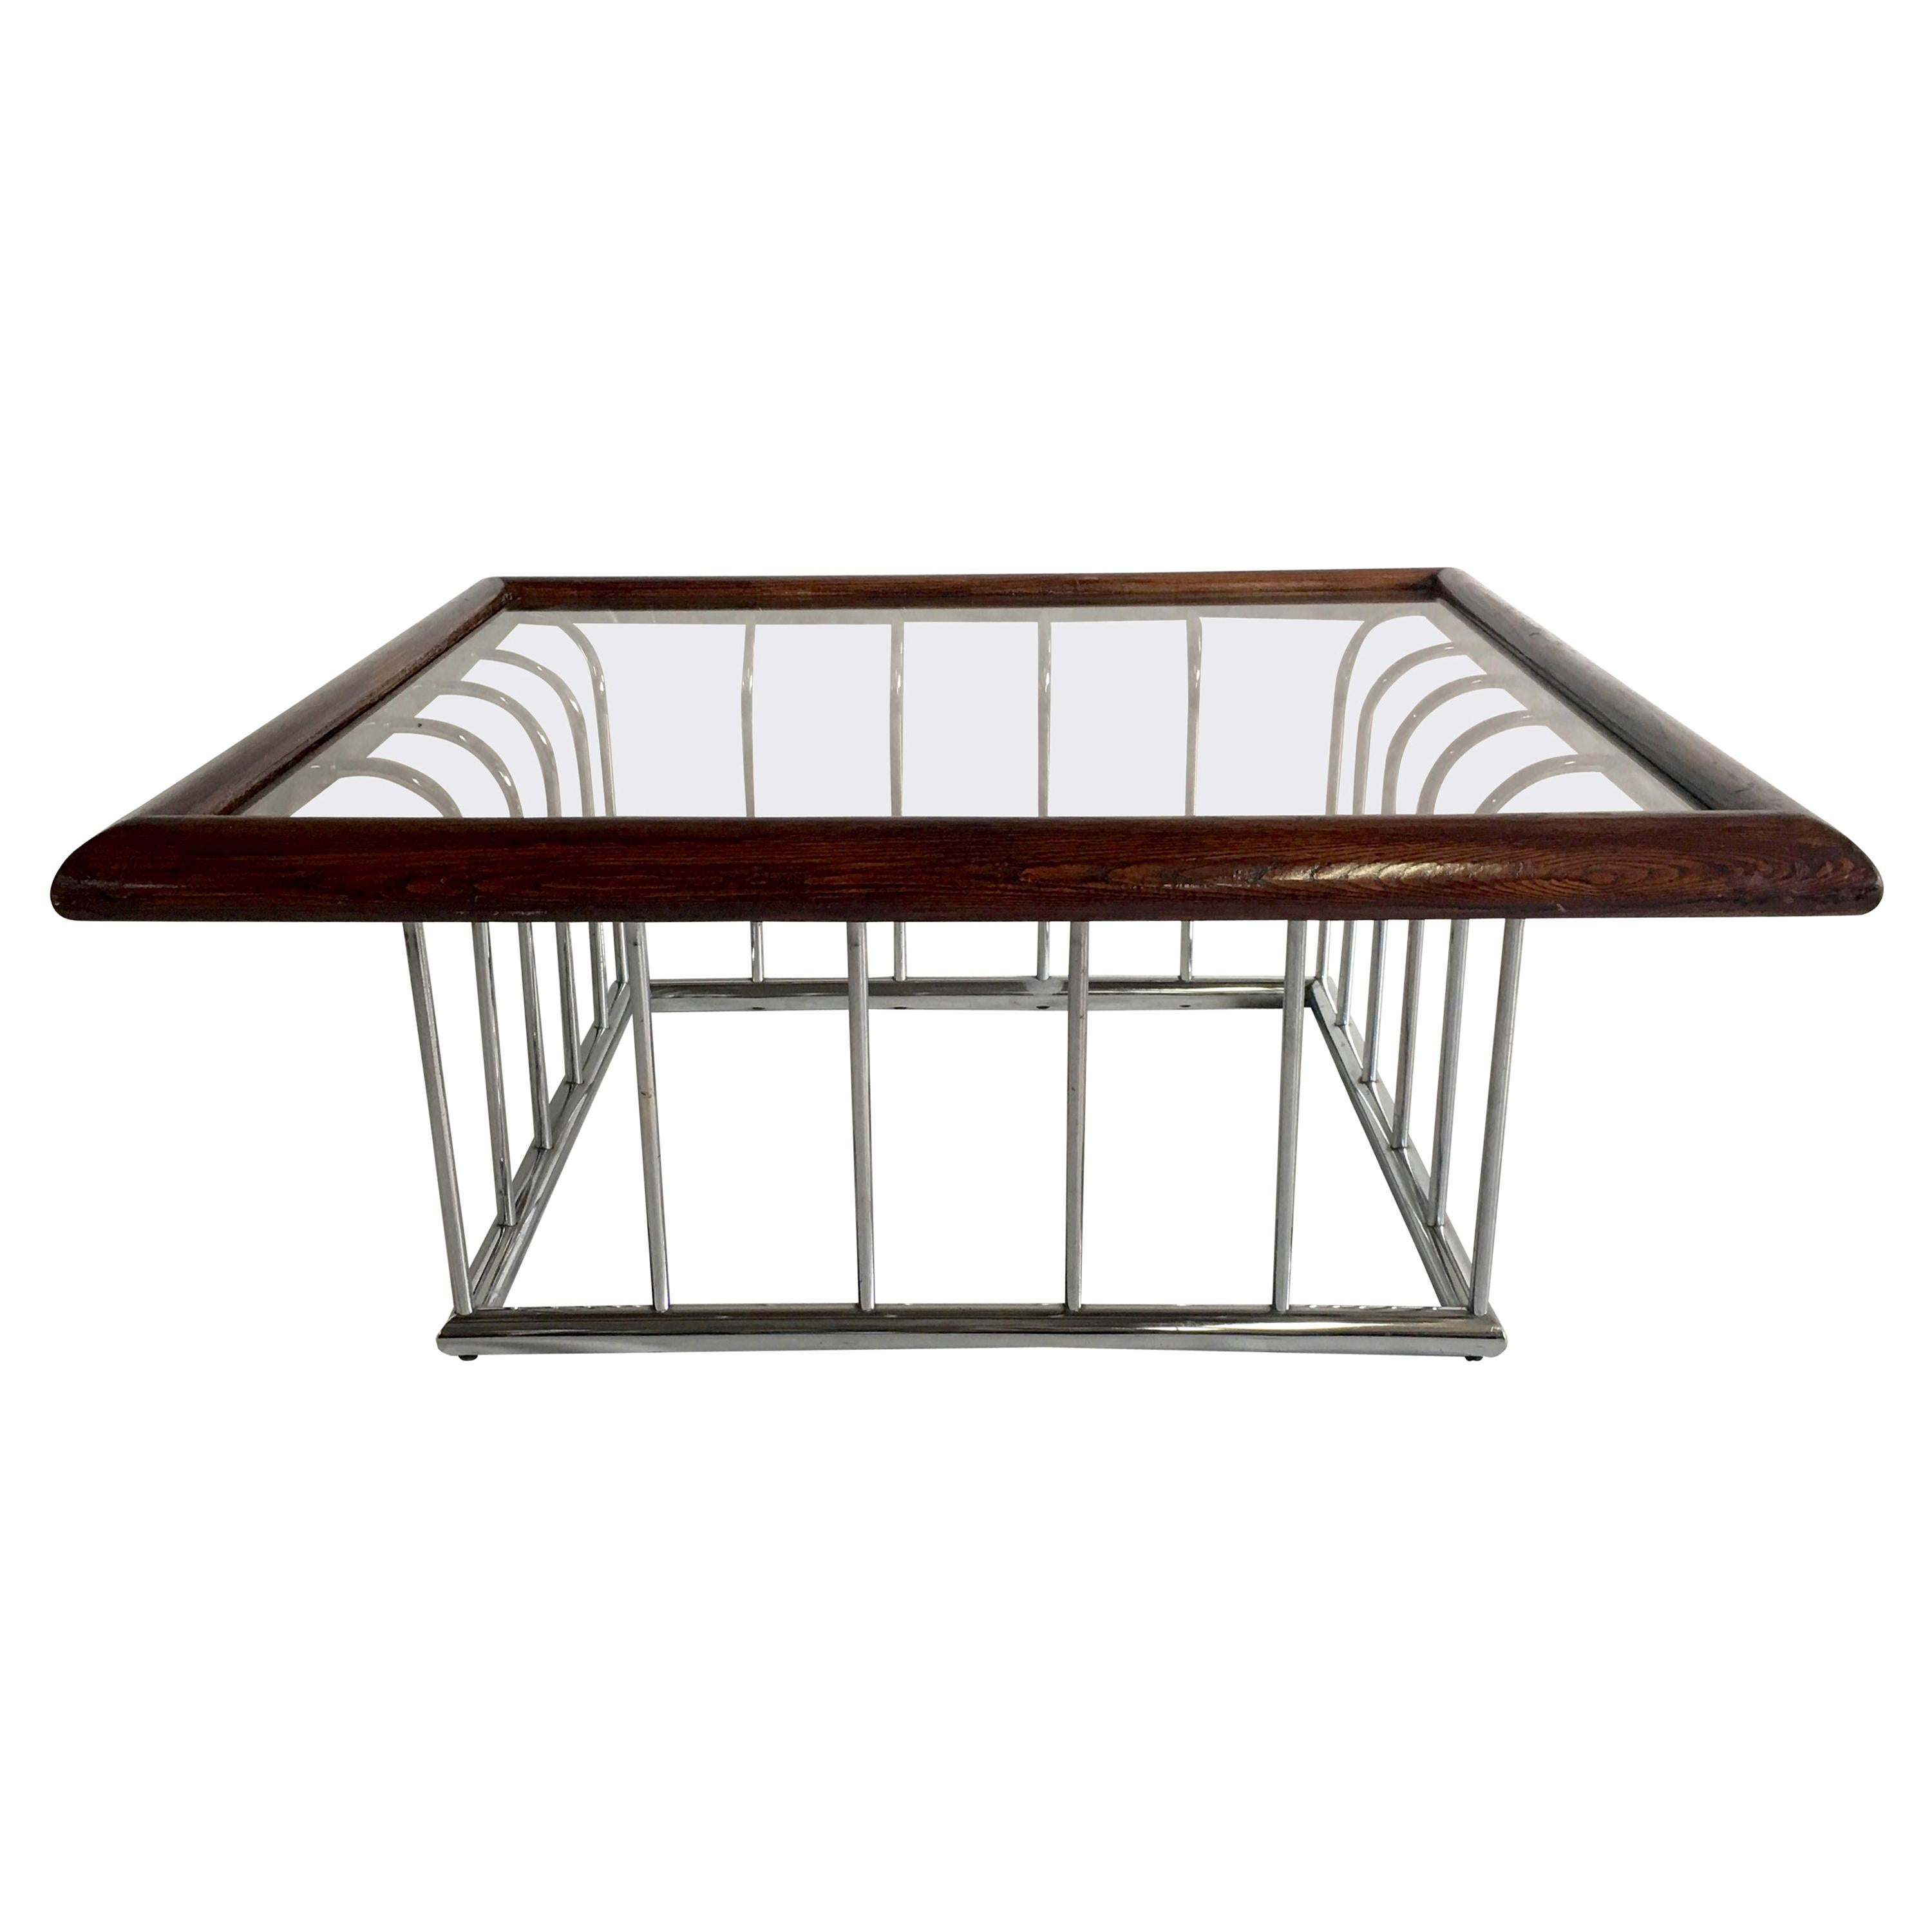 20th Century Milo Baughman Style Wood and Chrome Smoked Glass Top Coffee Table